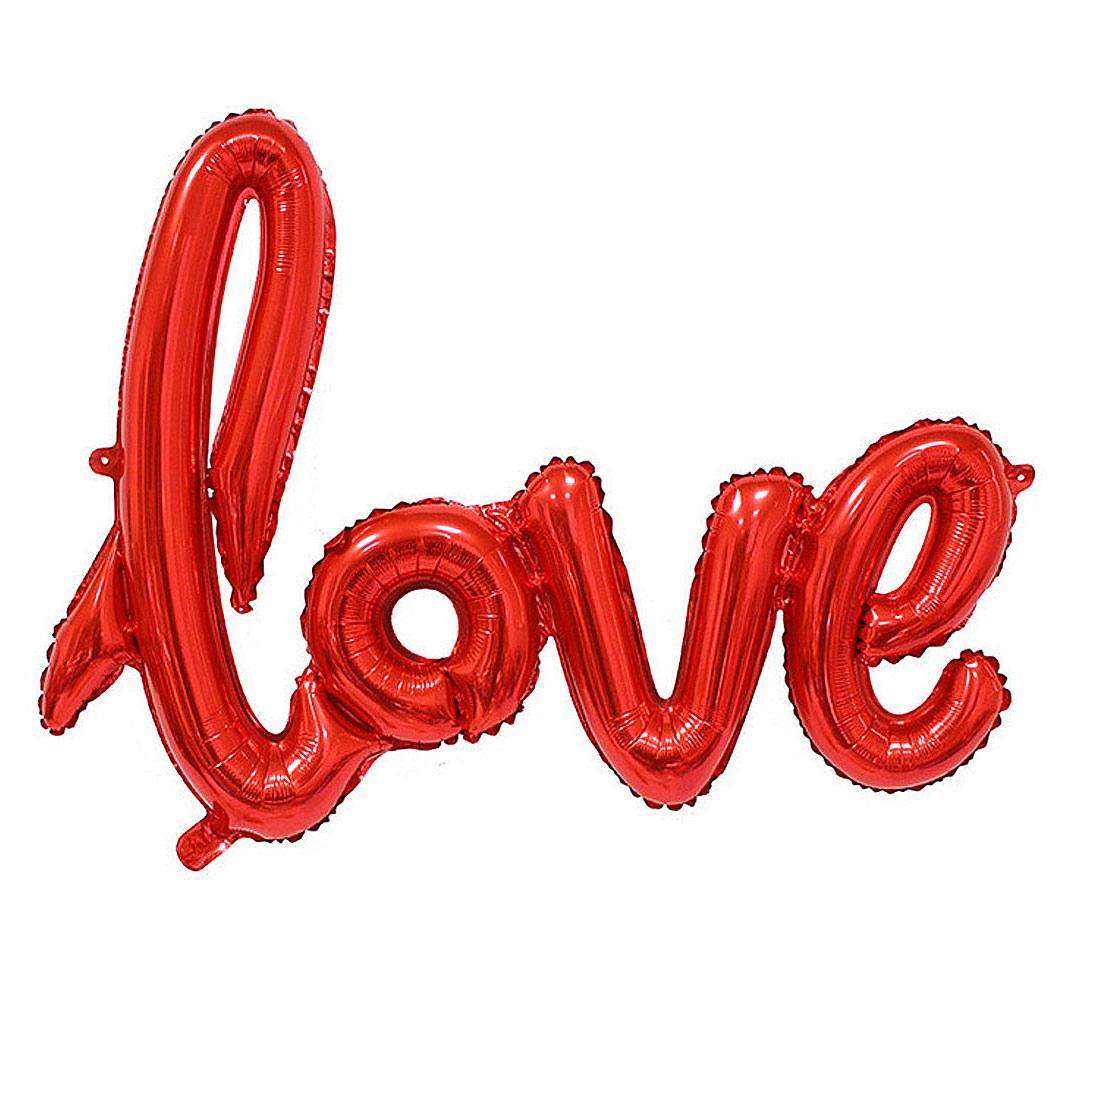 Home Foil LOVE Shaped Inflation Balloon Wedding Party Celebration Decor Red 30 Inch